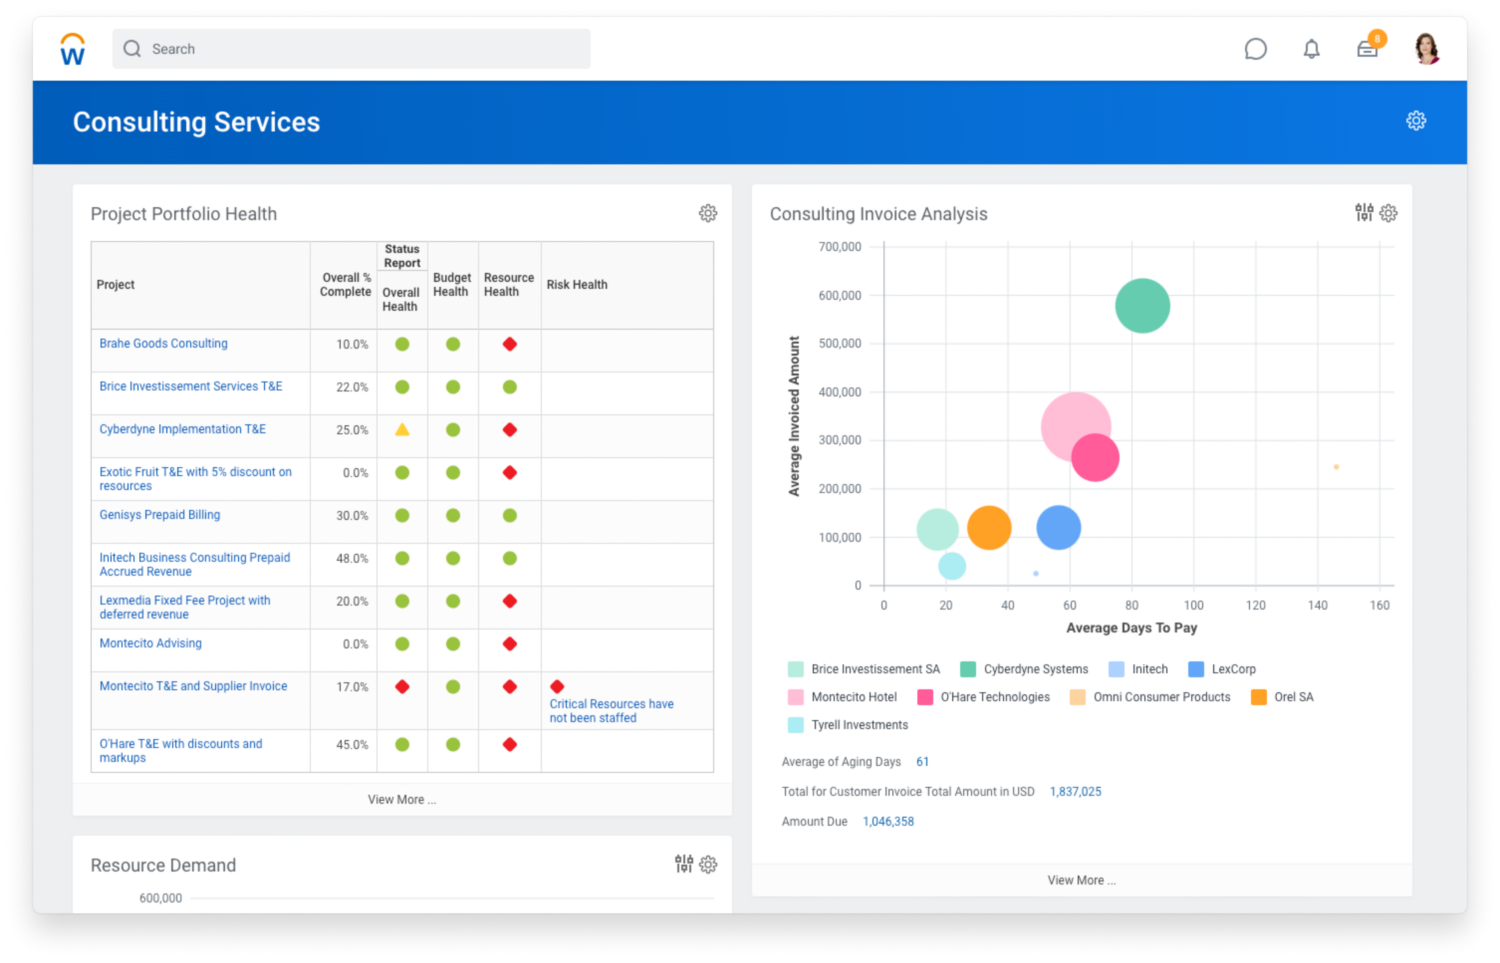 Screenshot of consulting services dashboard showing project portfolio health and a consulting invoice analysis scatter graph.